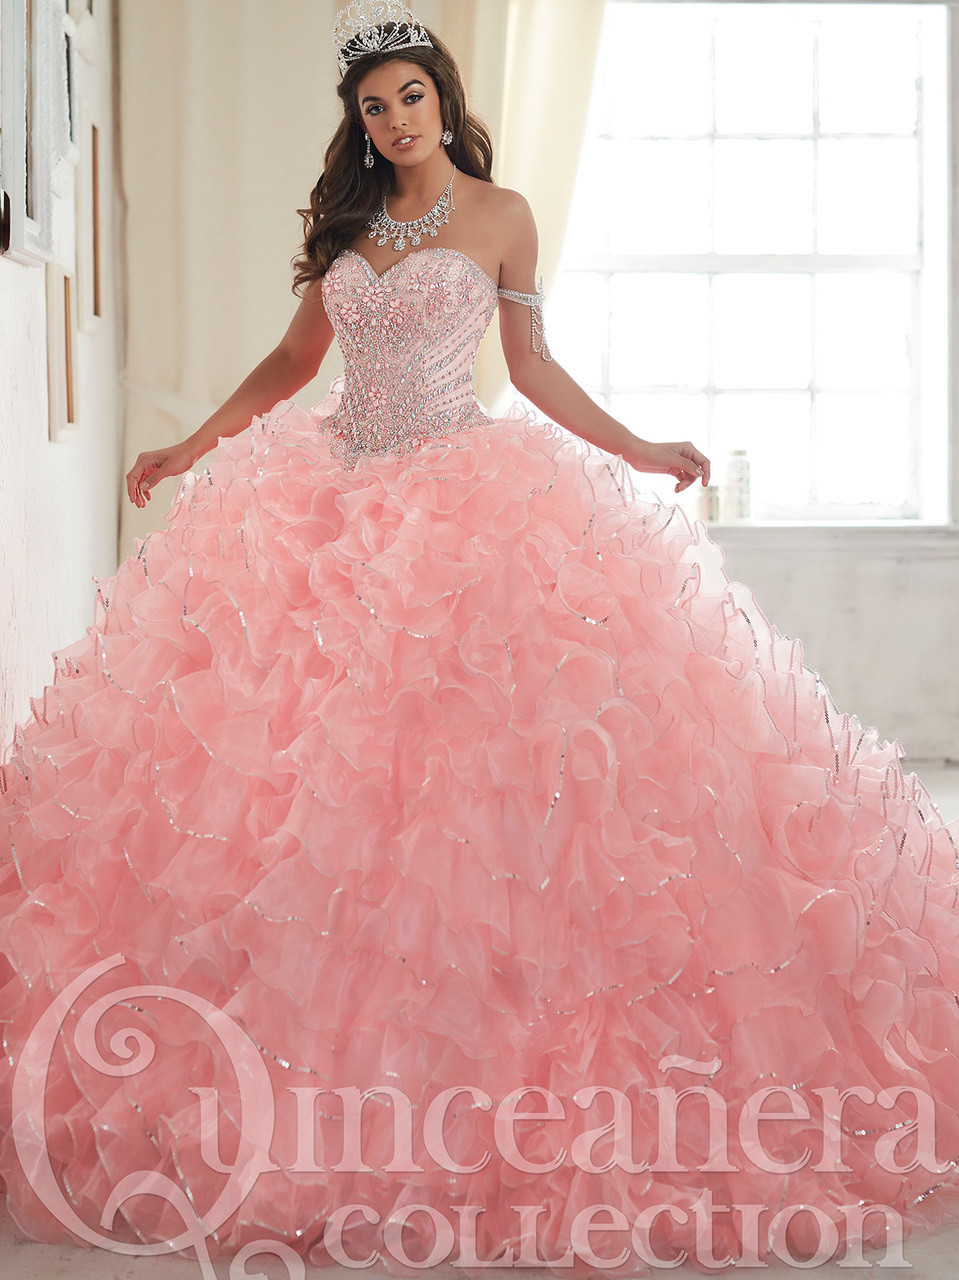 7e6c75110b0 Source https   promheadquarters.com quinceanera-collection-quince-dress -26845